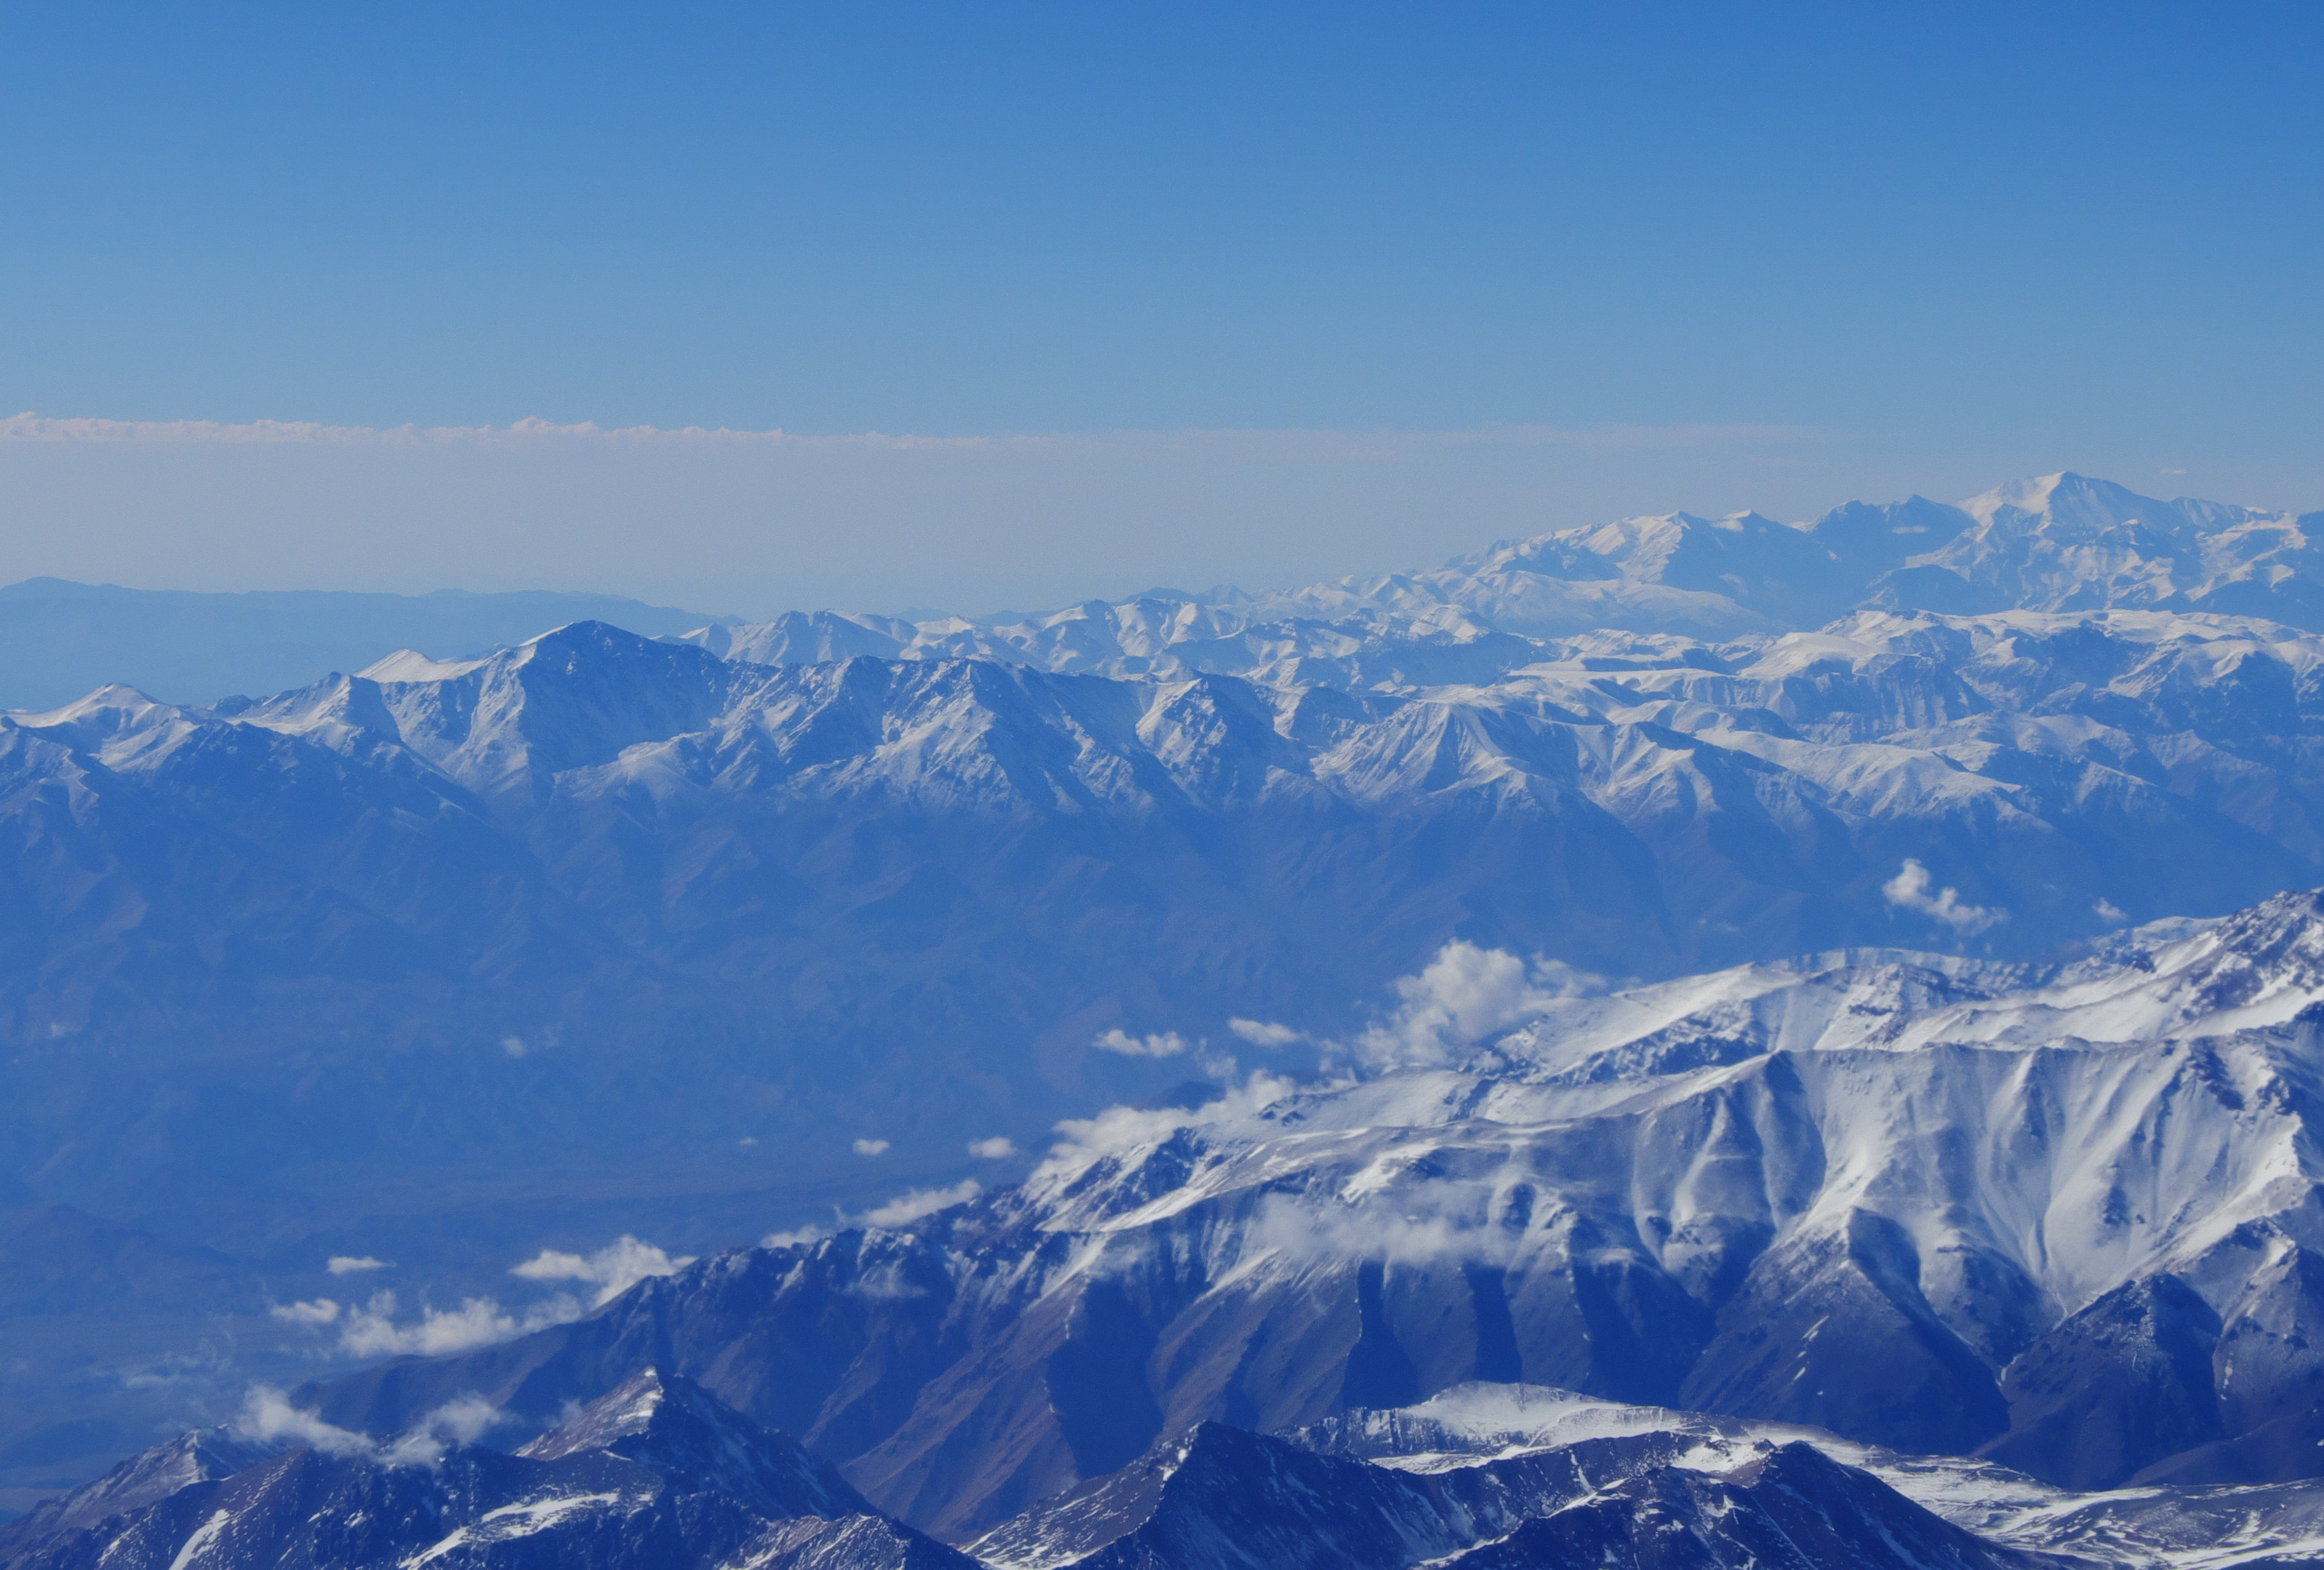 A blue-hued shot of long mountain ridges in the Andes